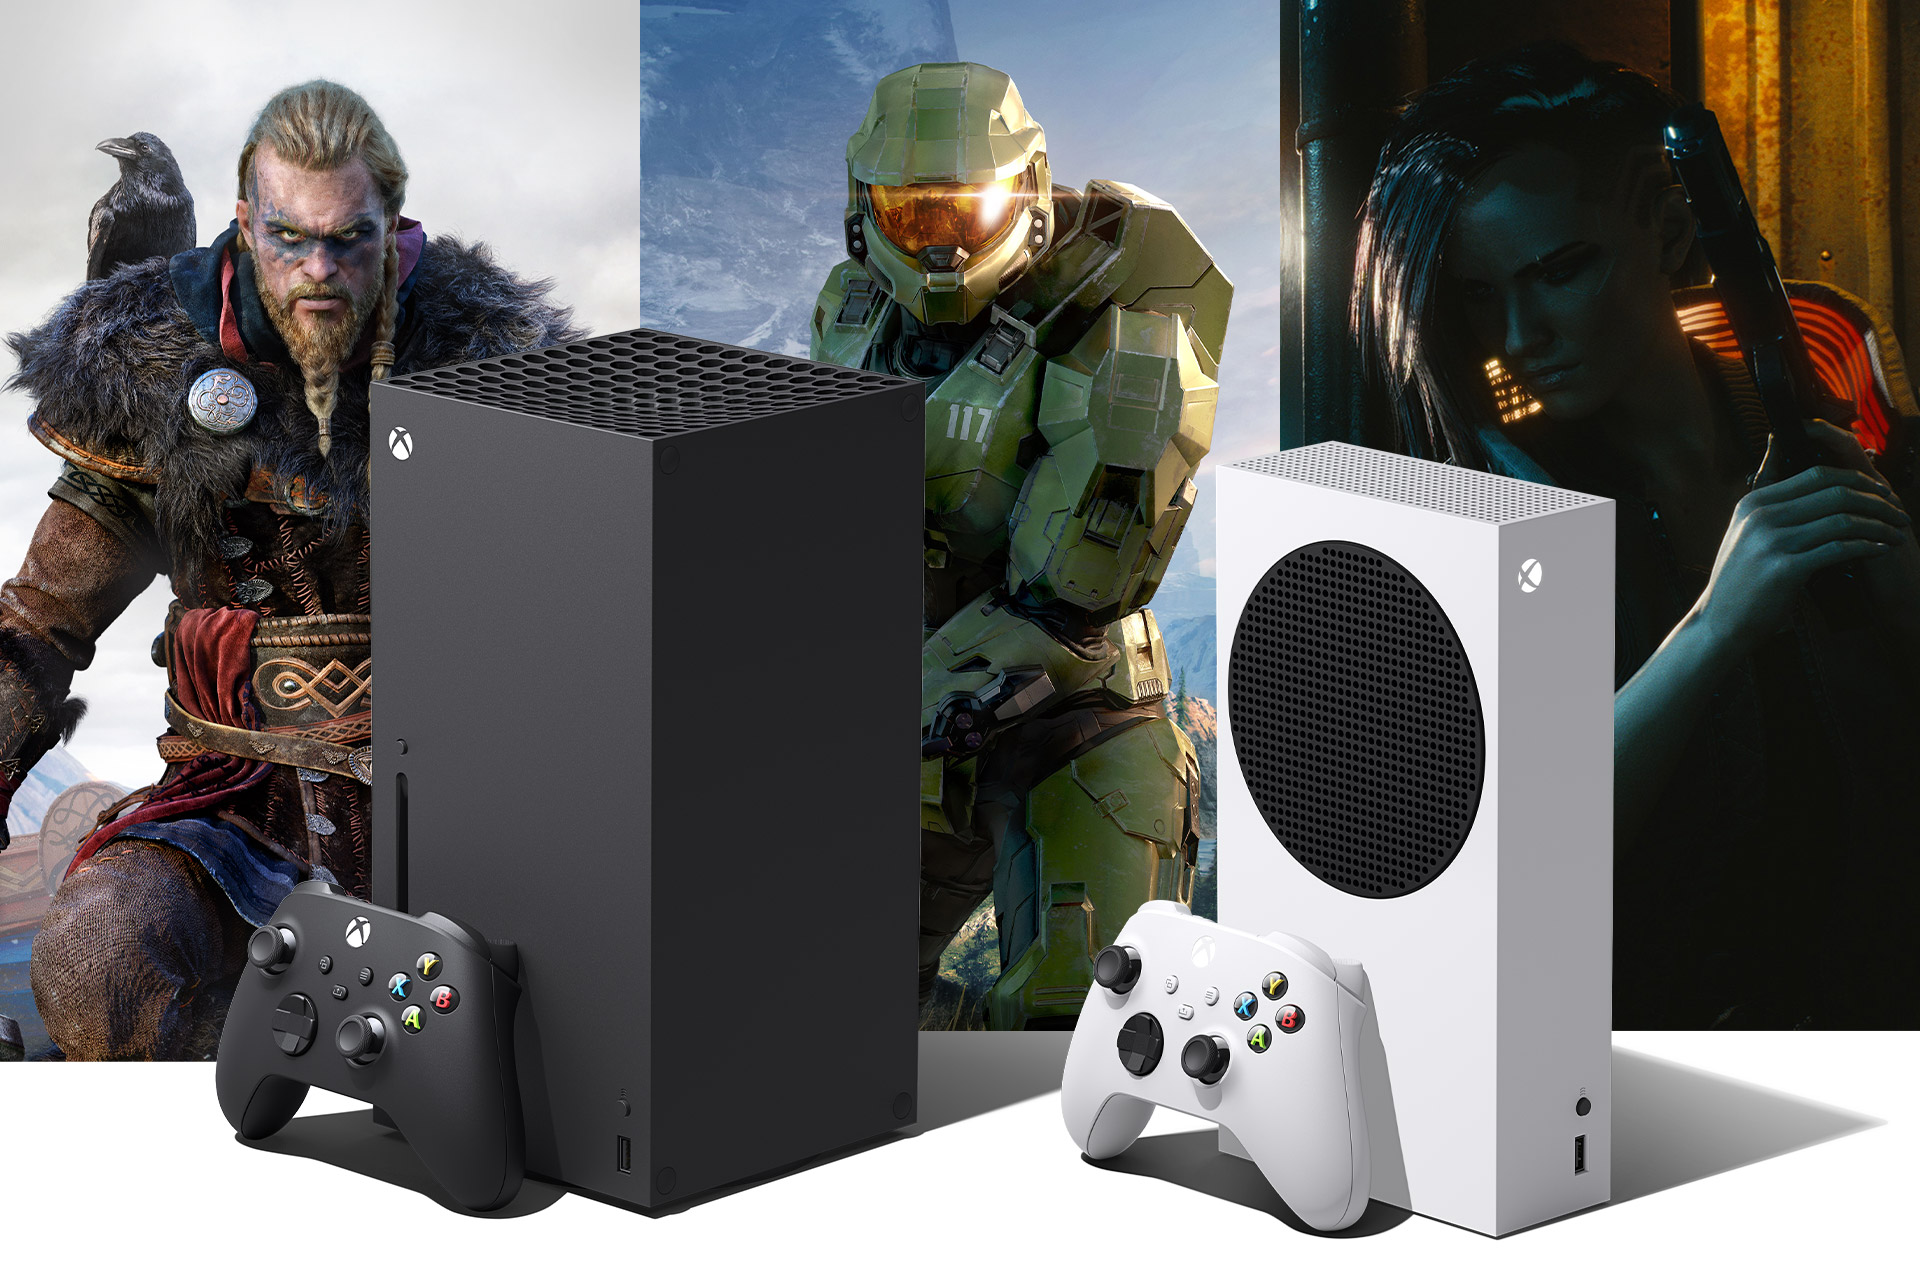 Xbox Series X and Xbox Series S with Assassins Creed Valhalla, Halo Infinite, and Cyberpunk 2077 game art